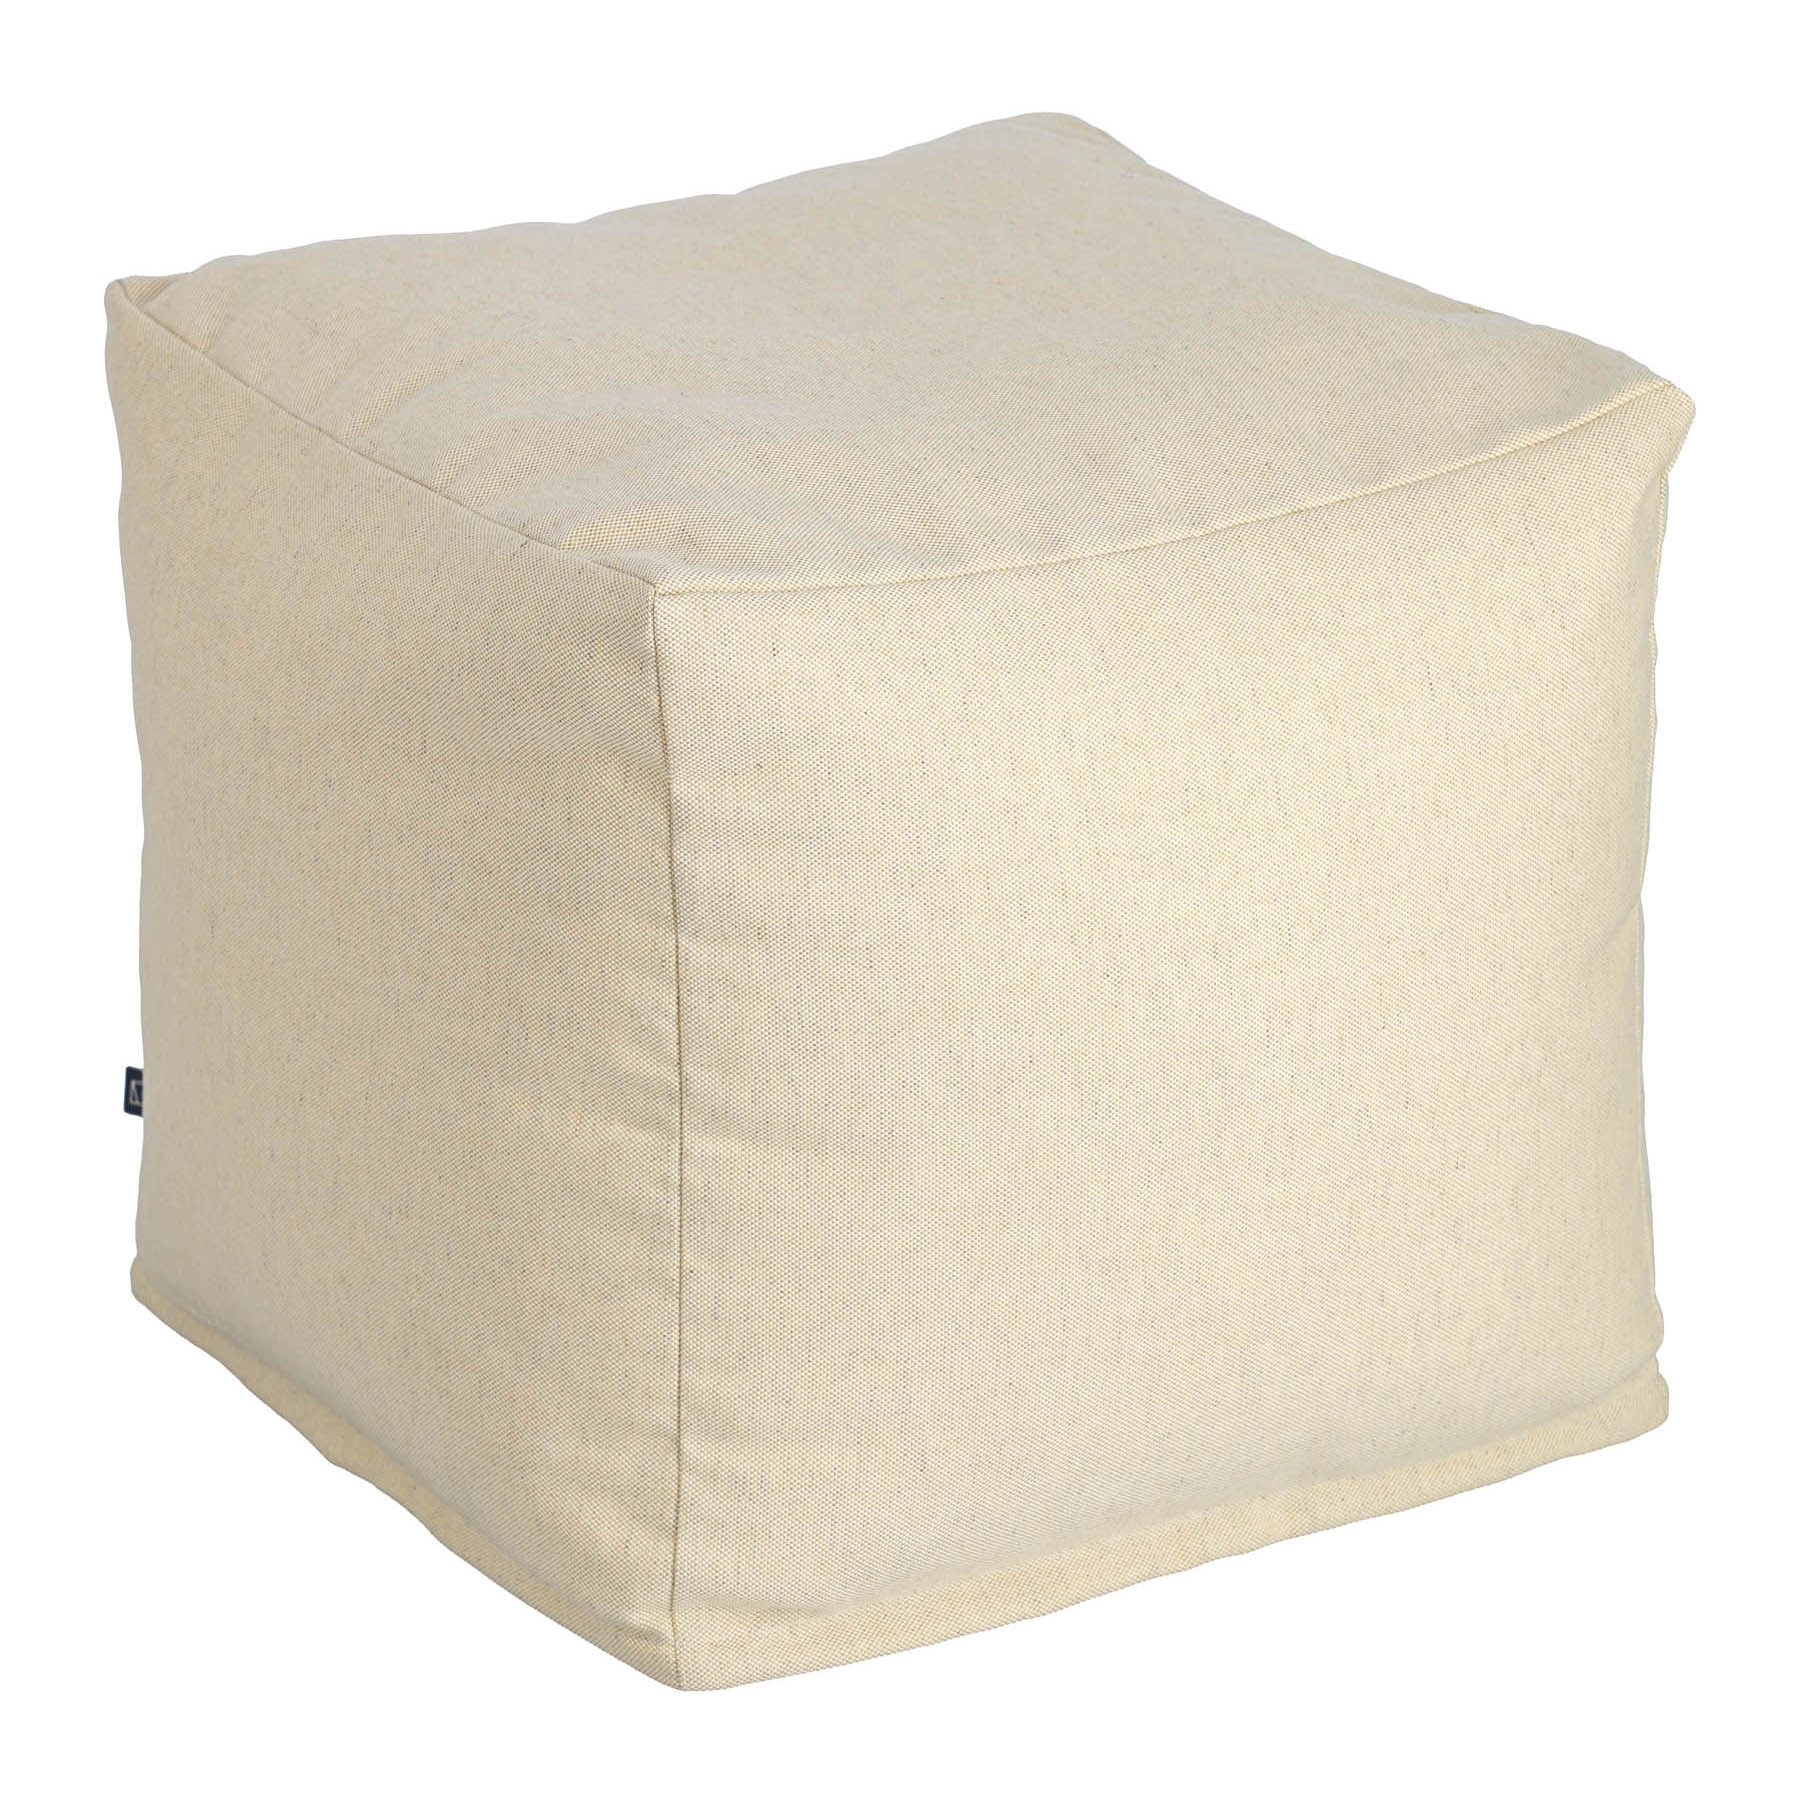 Amold Fabric Square Pouf, Beige